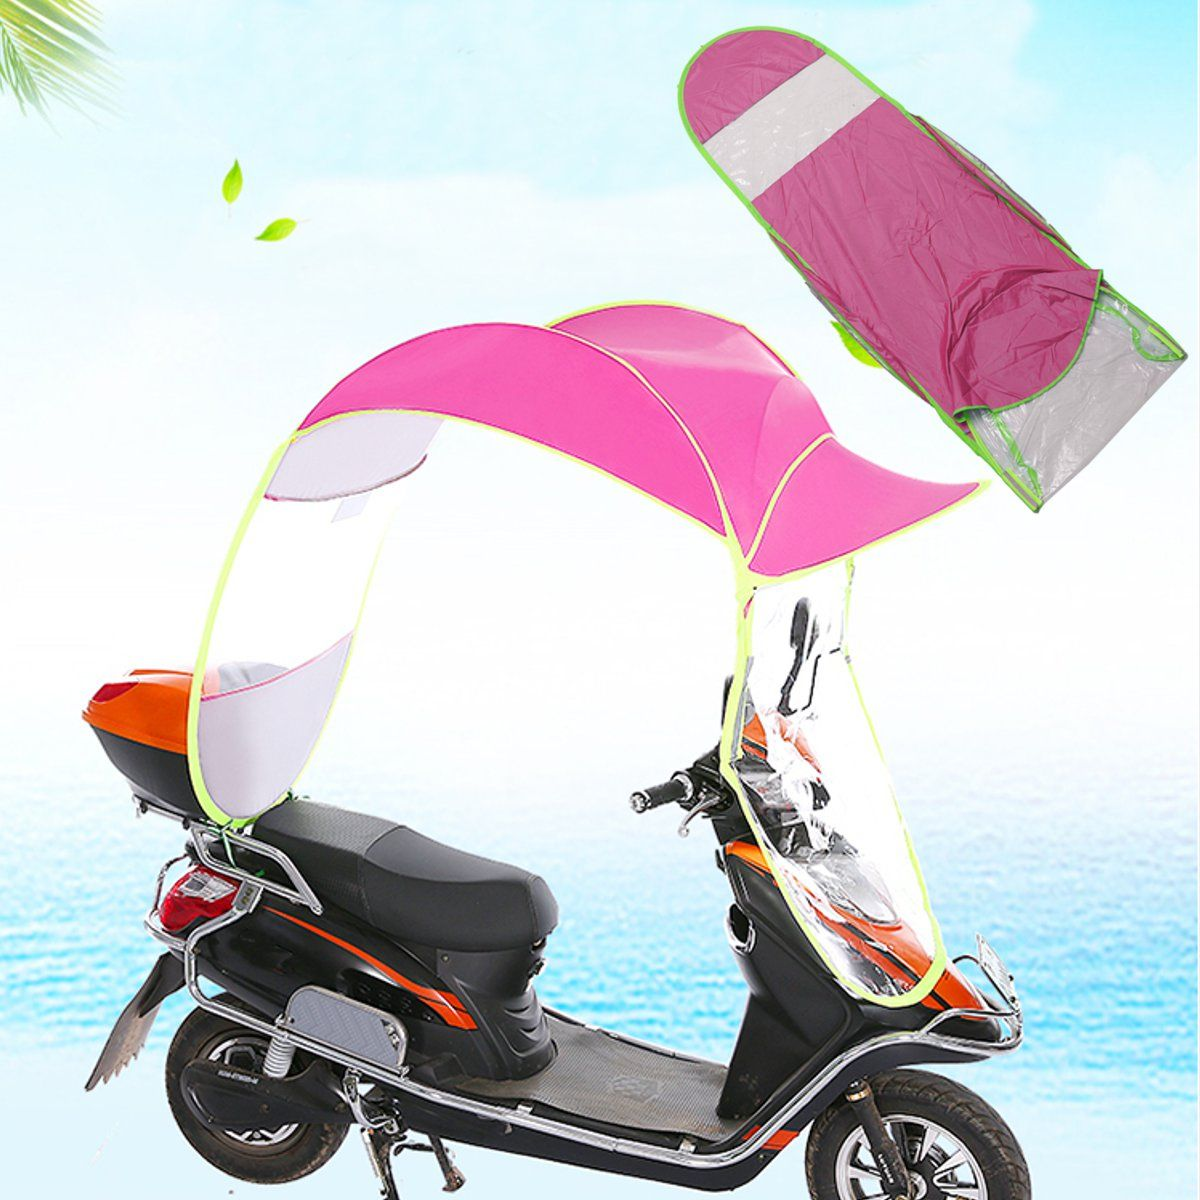 Mofaner Motorbike Scooter Rain Cover Sun Shade Motorcycle Electric Vehicle Umbrella Raincoat Poncho Cover Shelter 2.8*0.8*0.7M